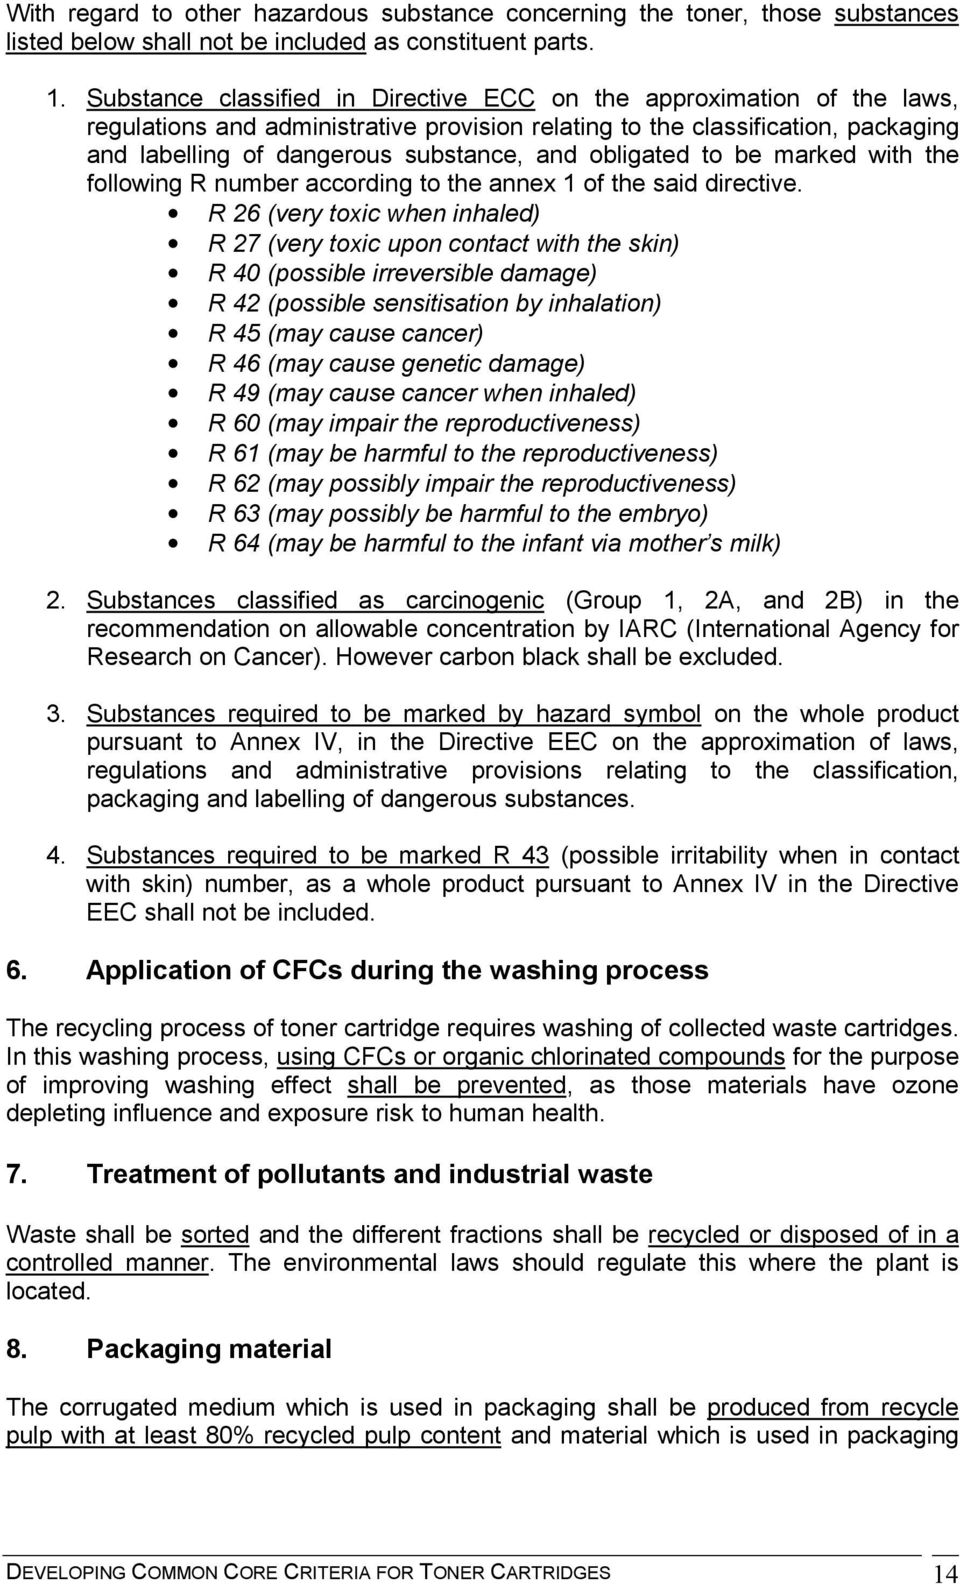 Developing Common Core Criteria for Toner Cartridges - PDF